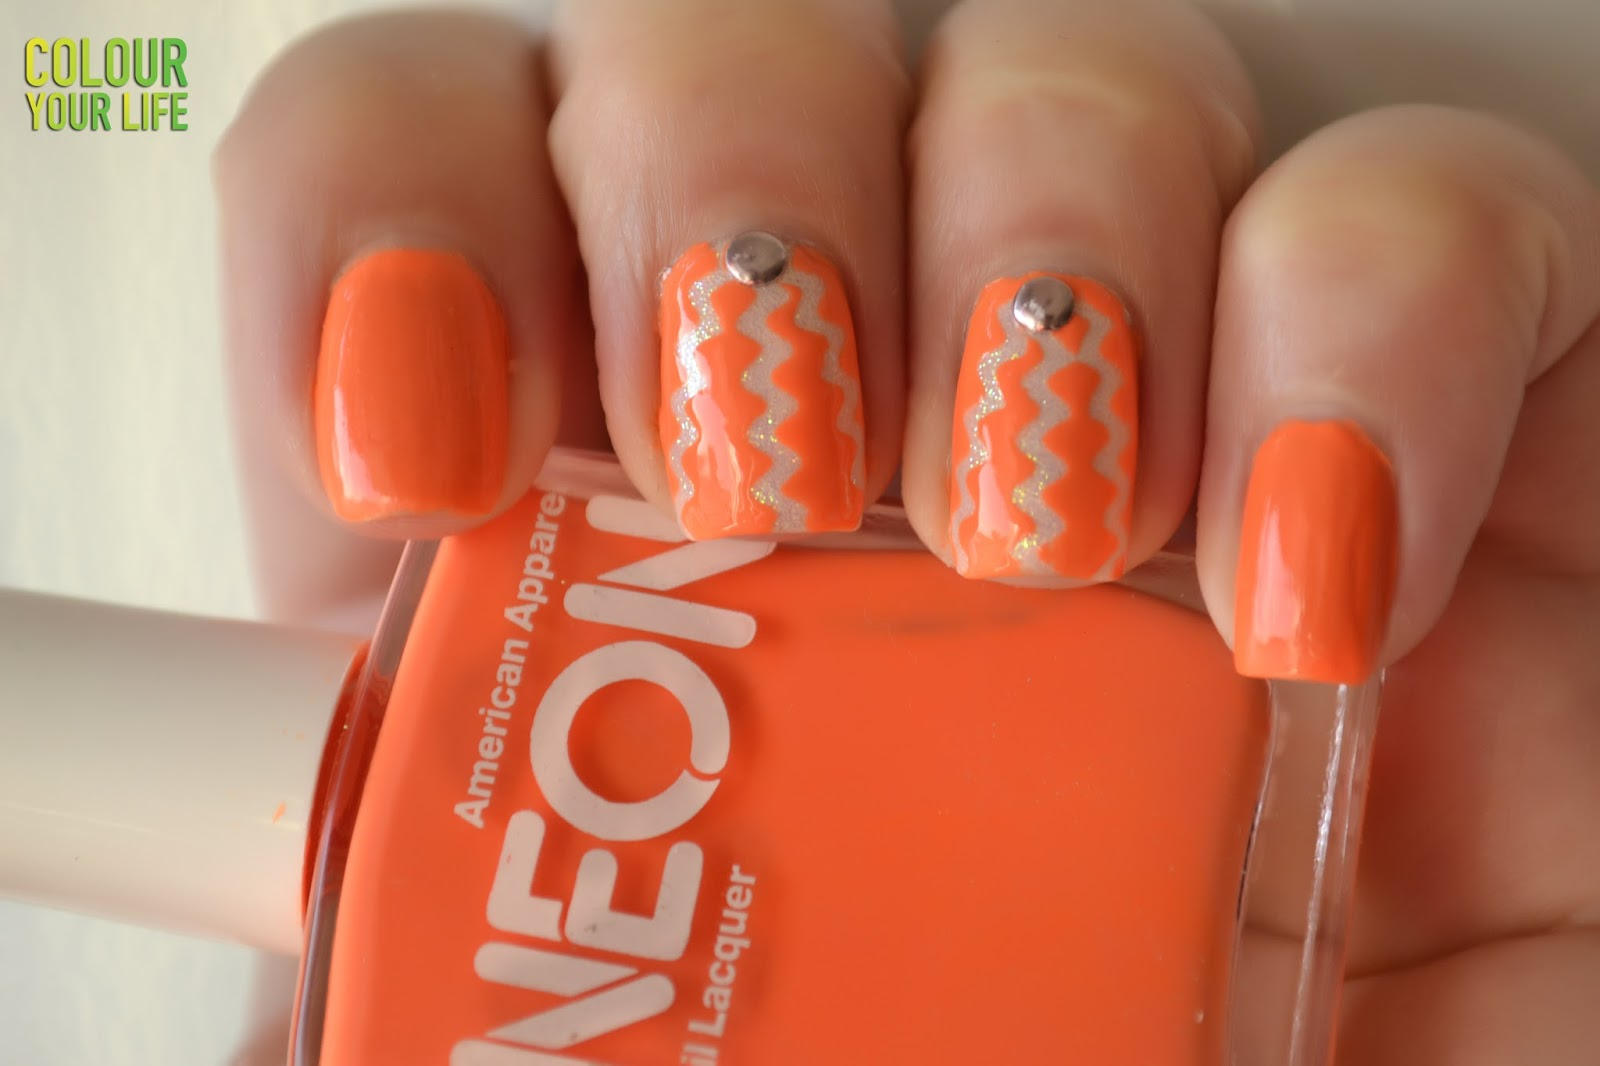 Colour your life: Bold neon nails